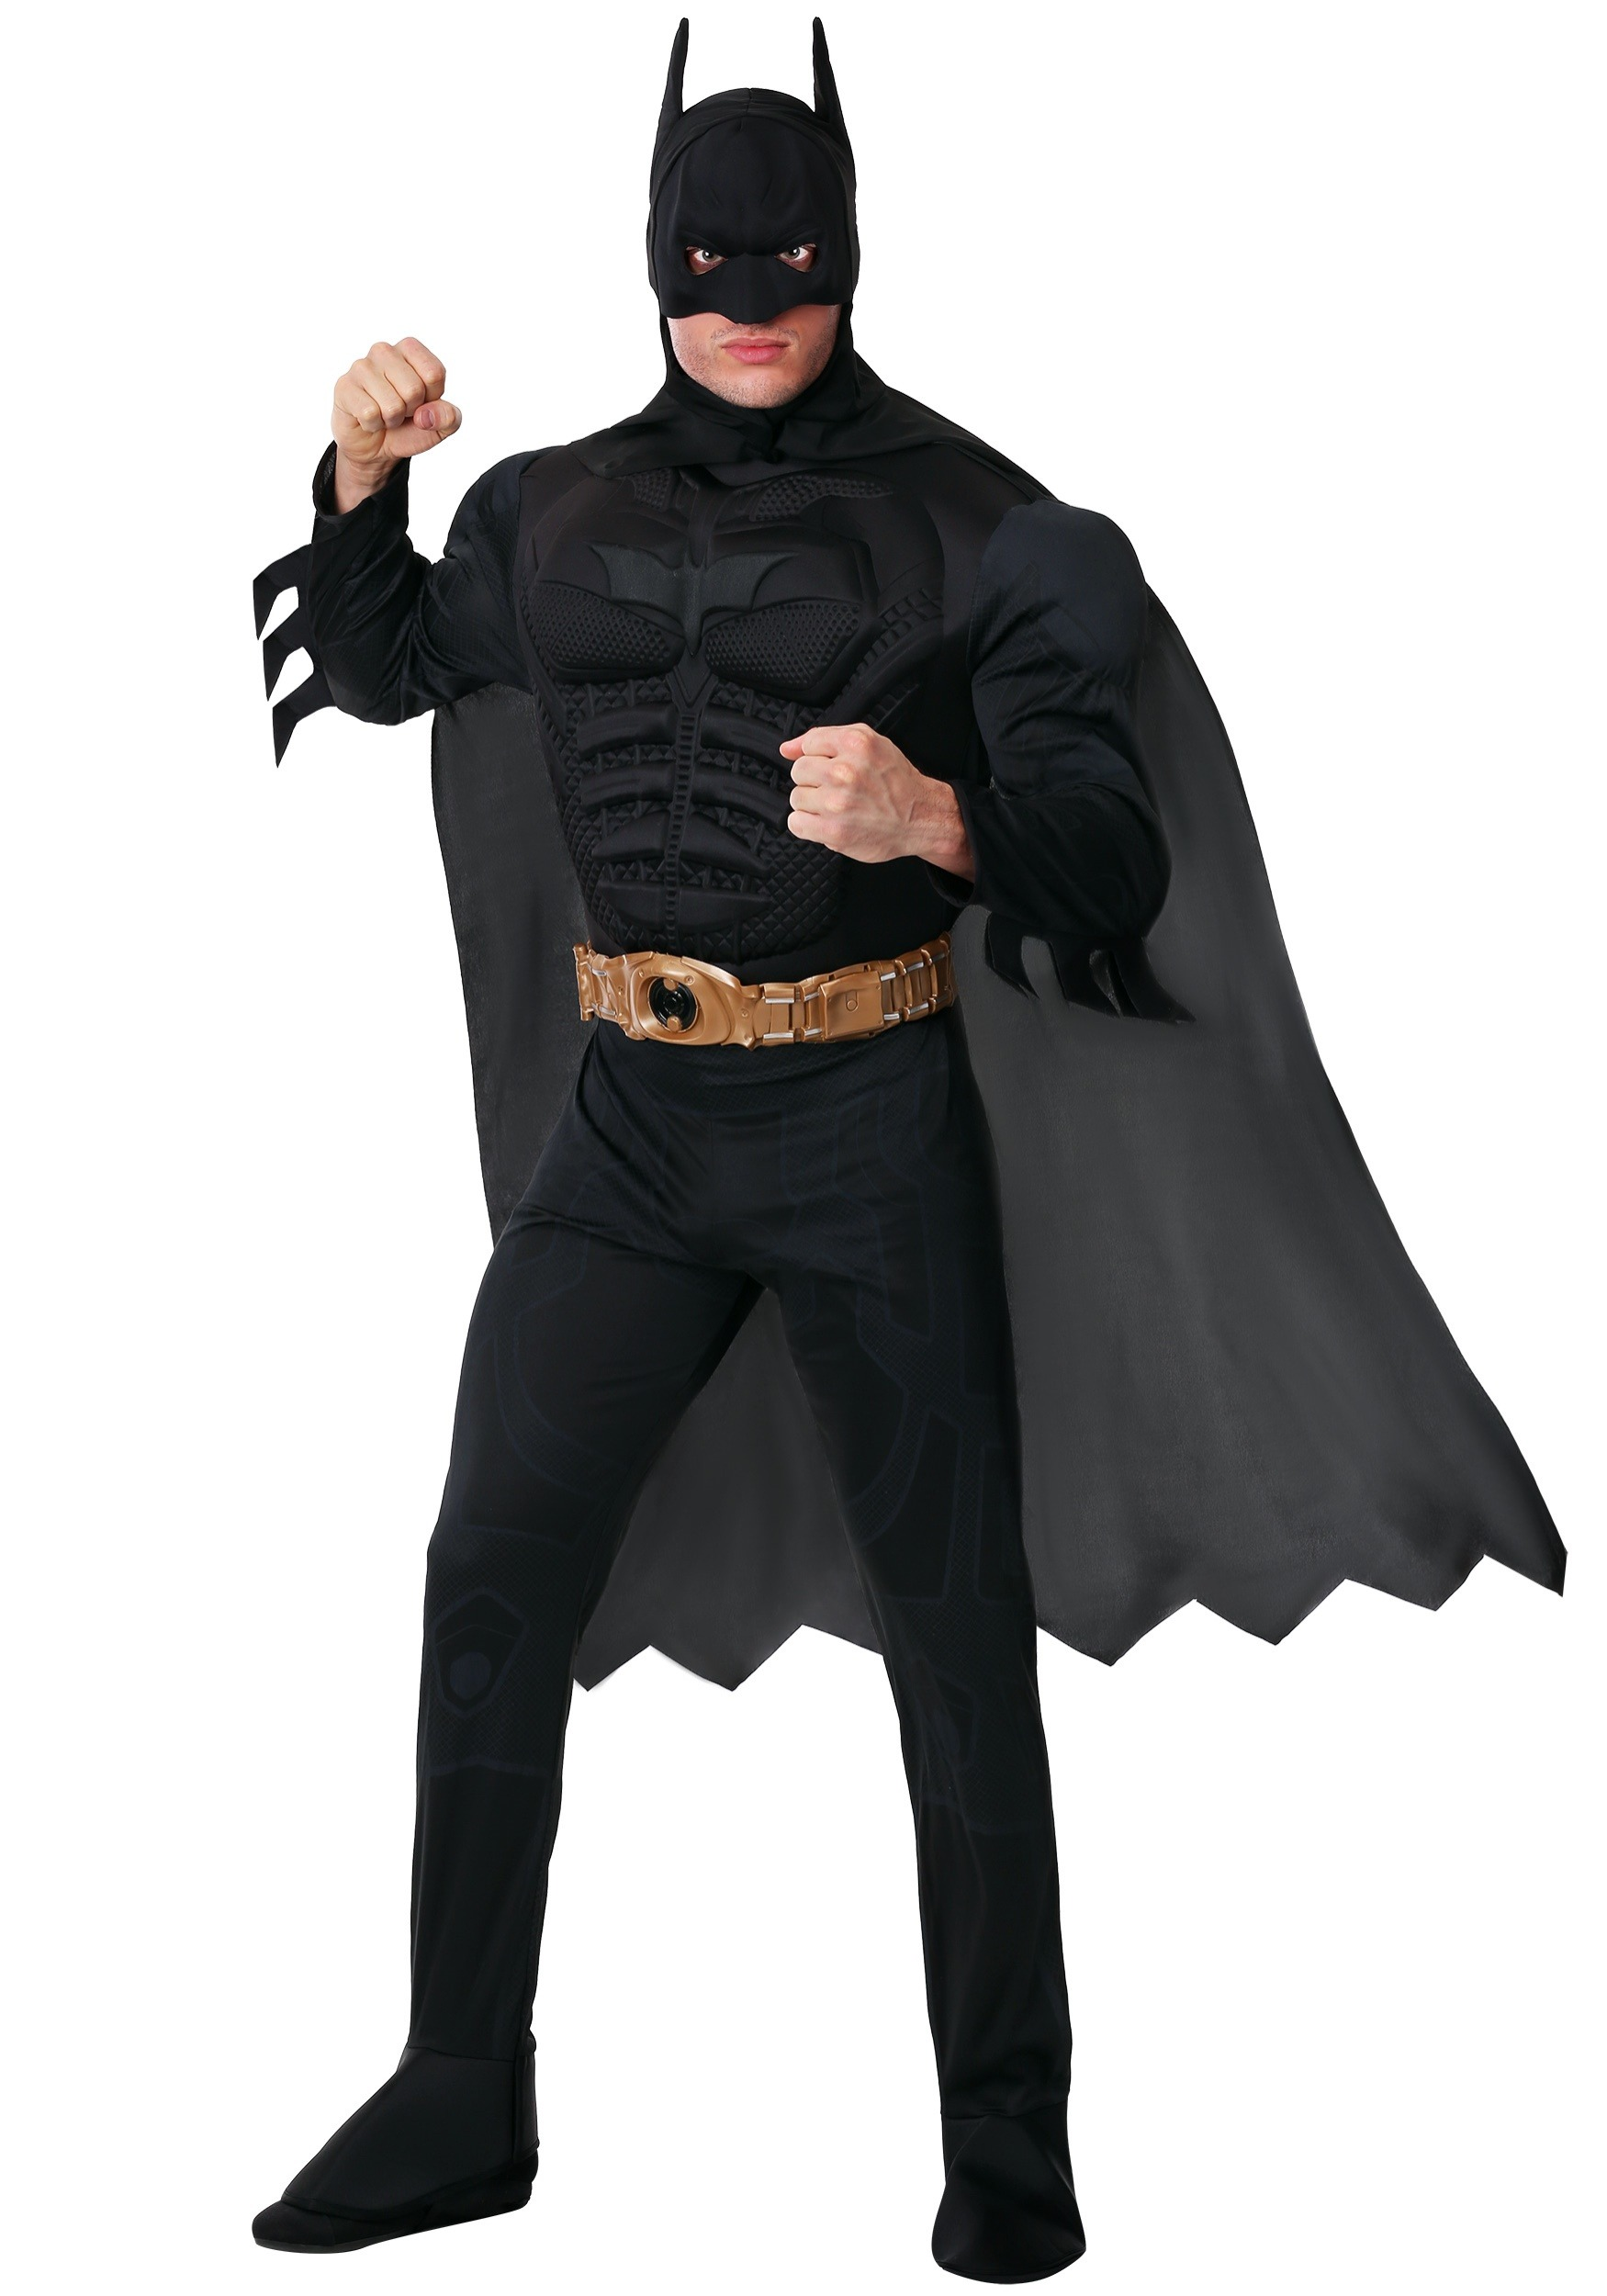 Adult Deluxe Dark Knight Batman Costume by Rubies